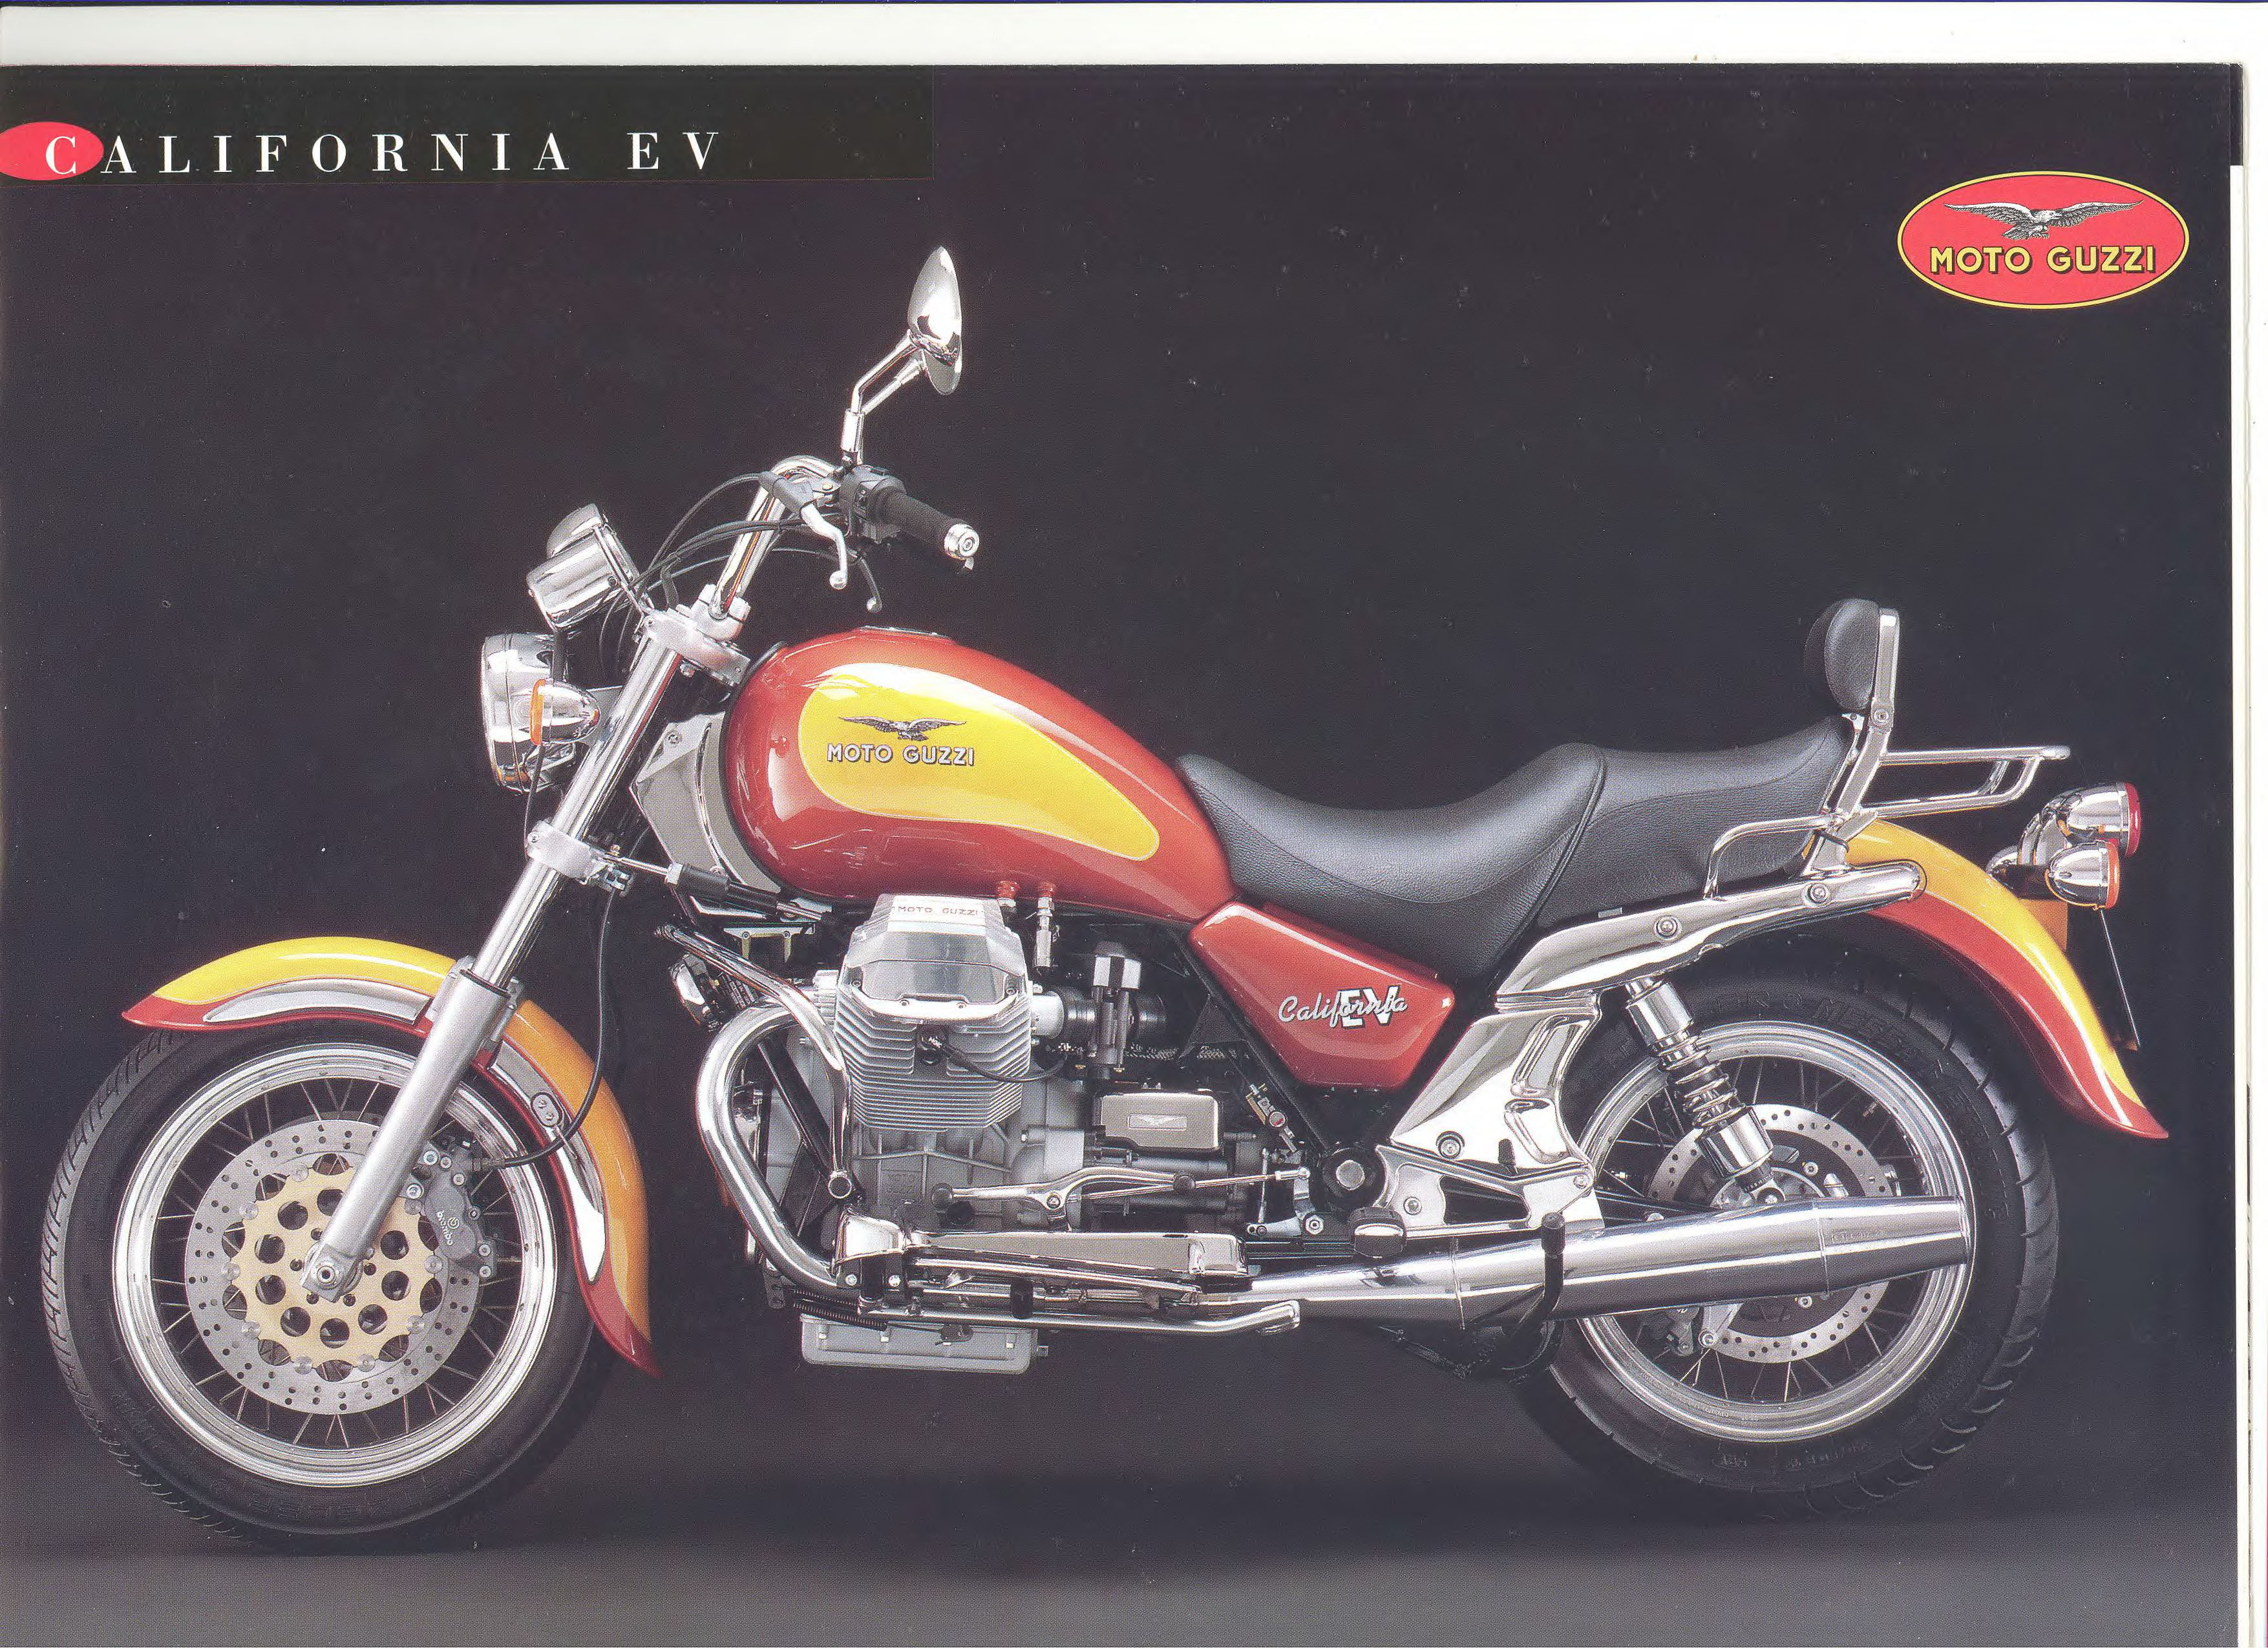 Moto Guzzi factory brochure: California EV